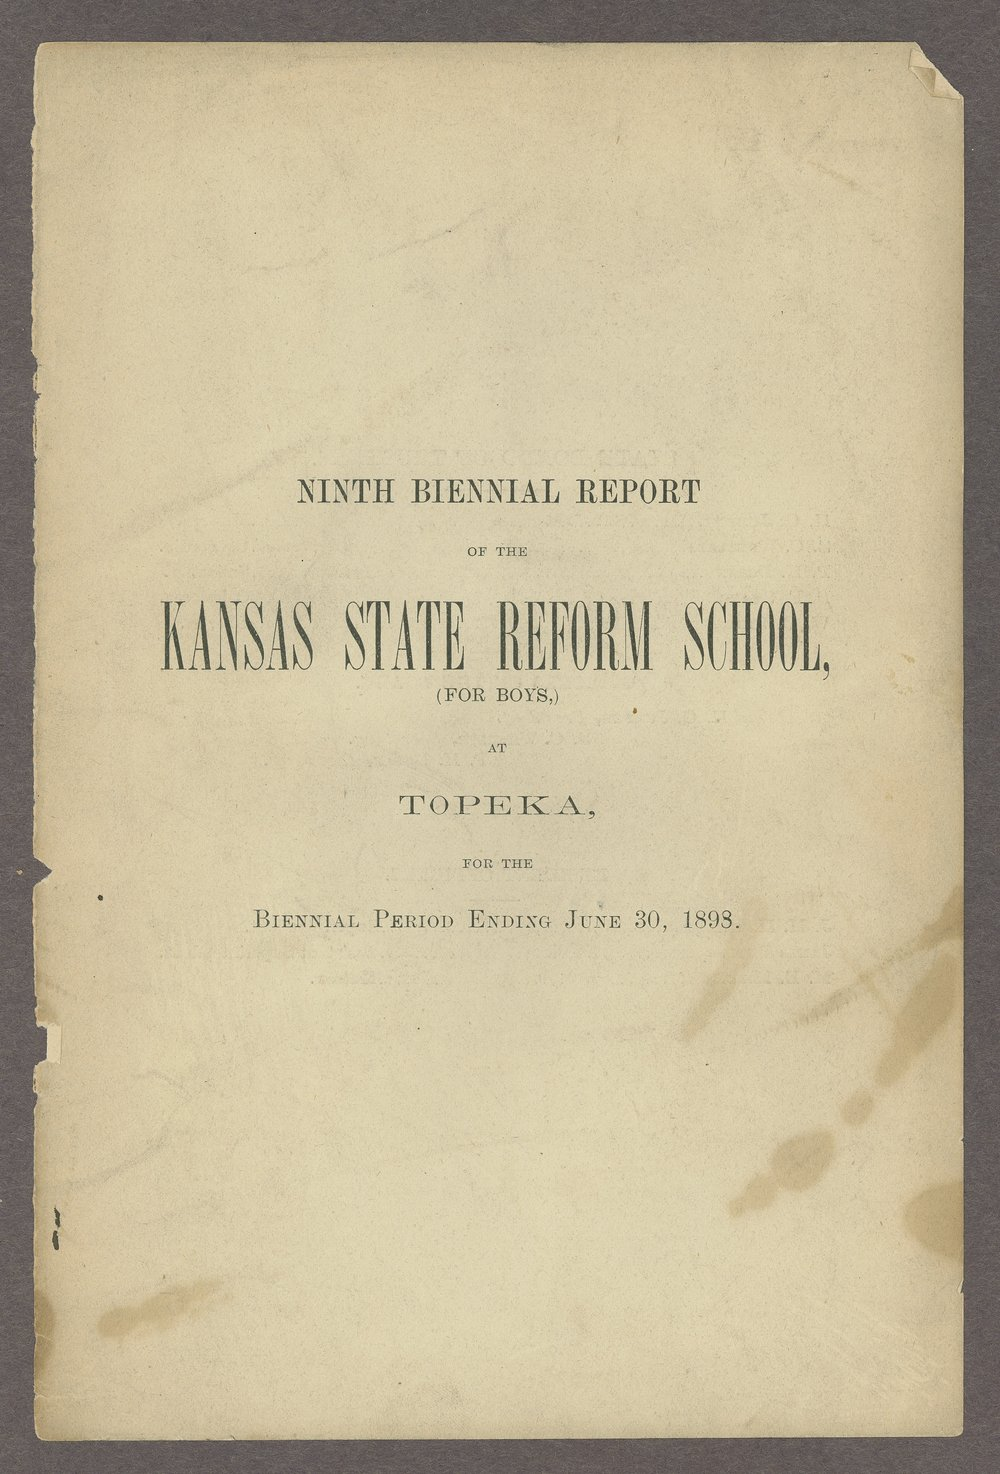 Biennial report of the State Reform School,1898 - 1